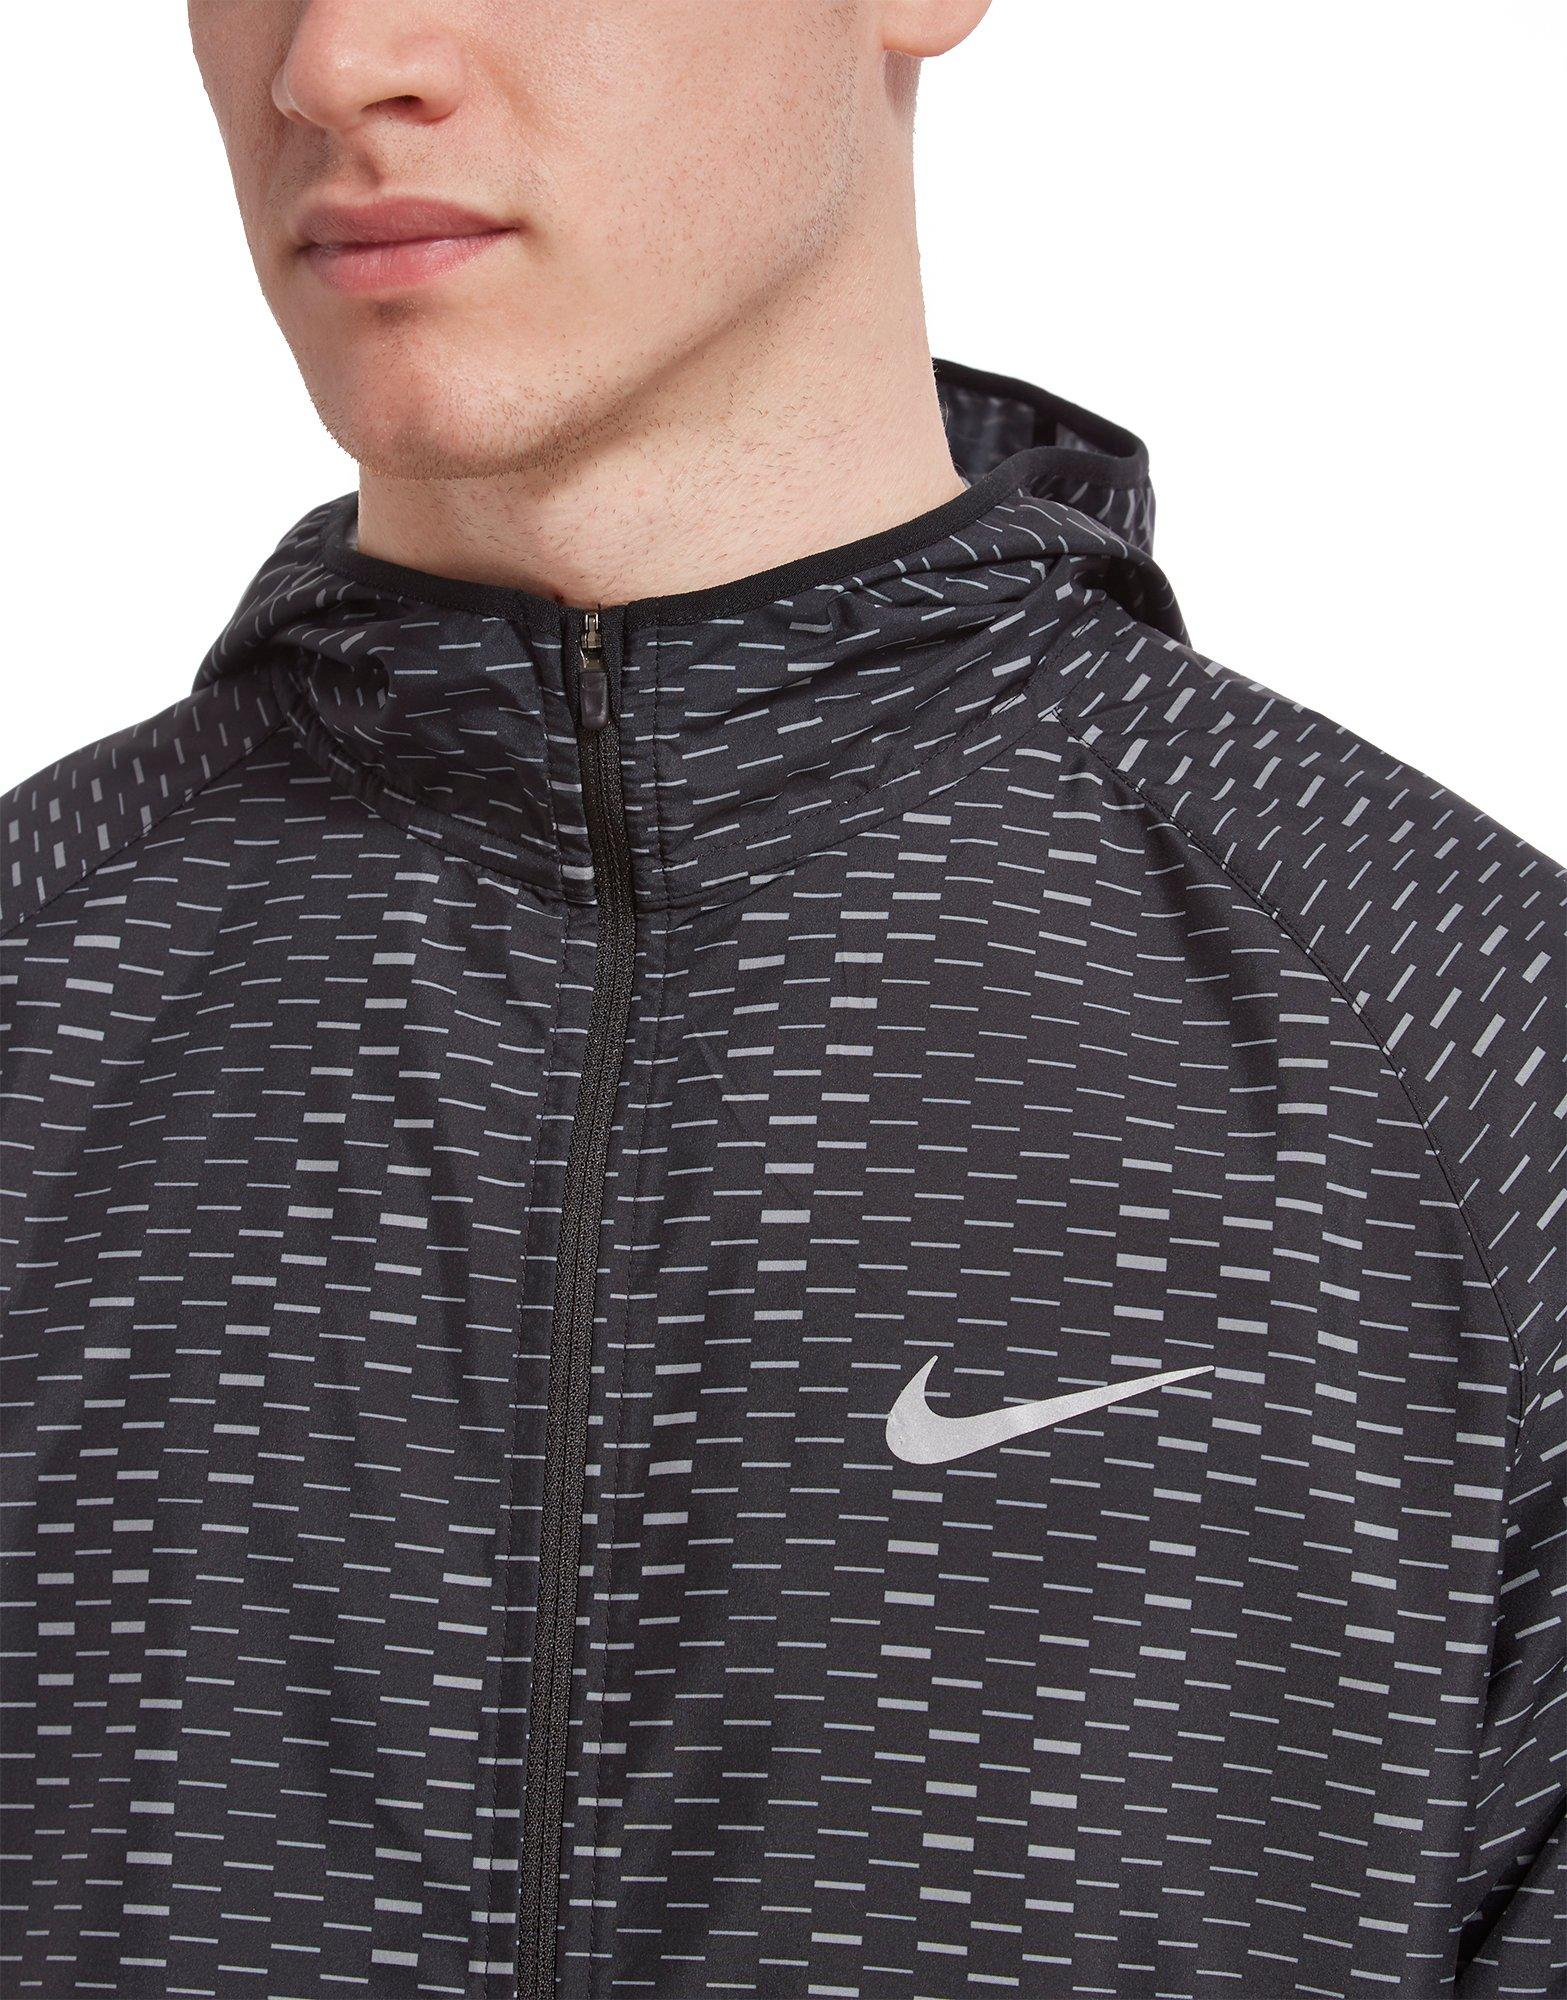 Nike racer men's running jacket